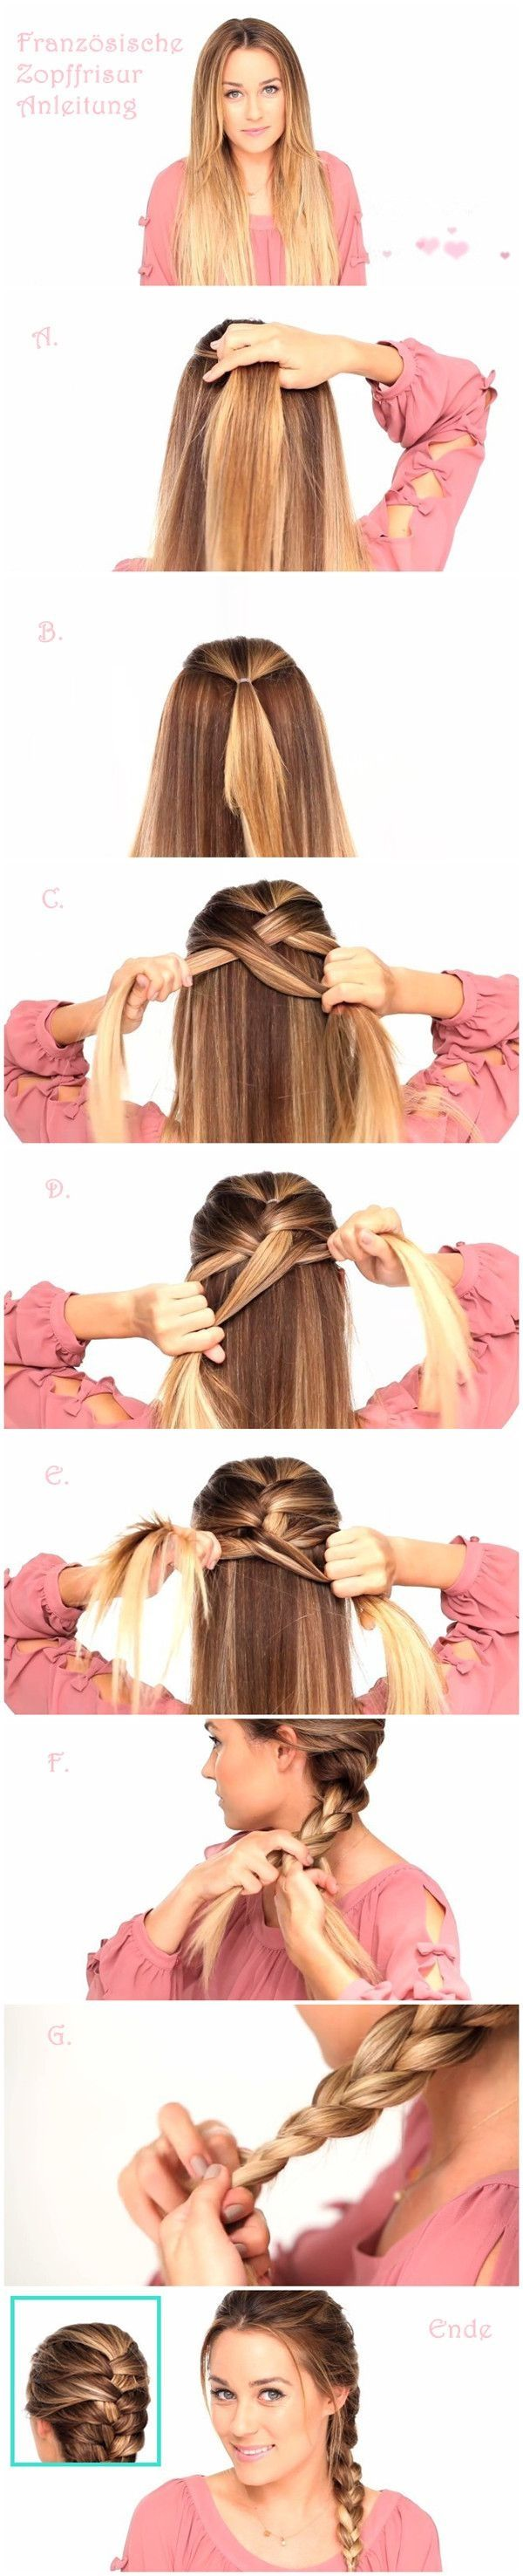 Diy braid frisuren pinterest hair style boho hairstyles and